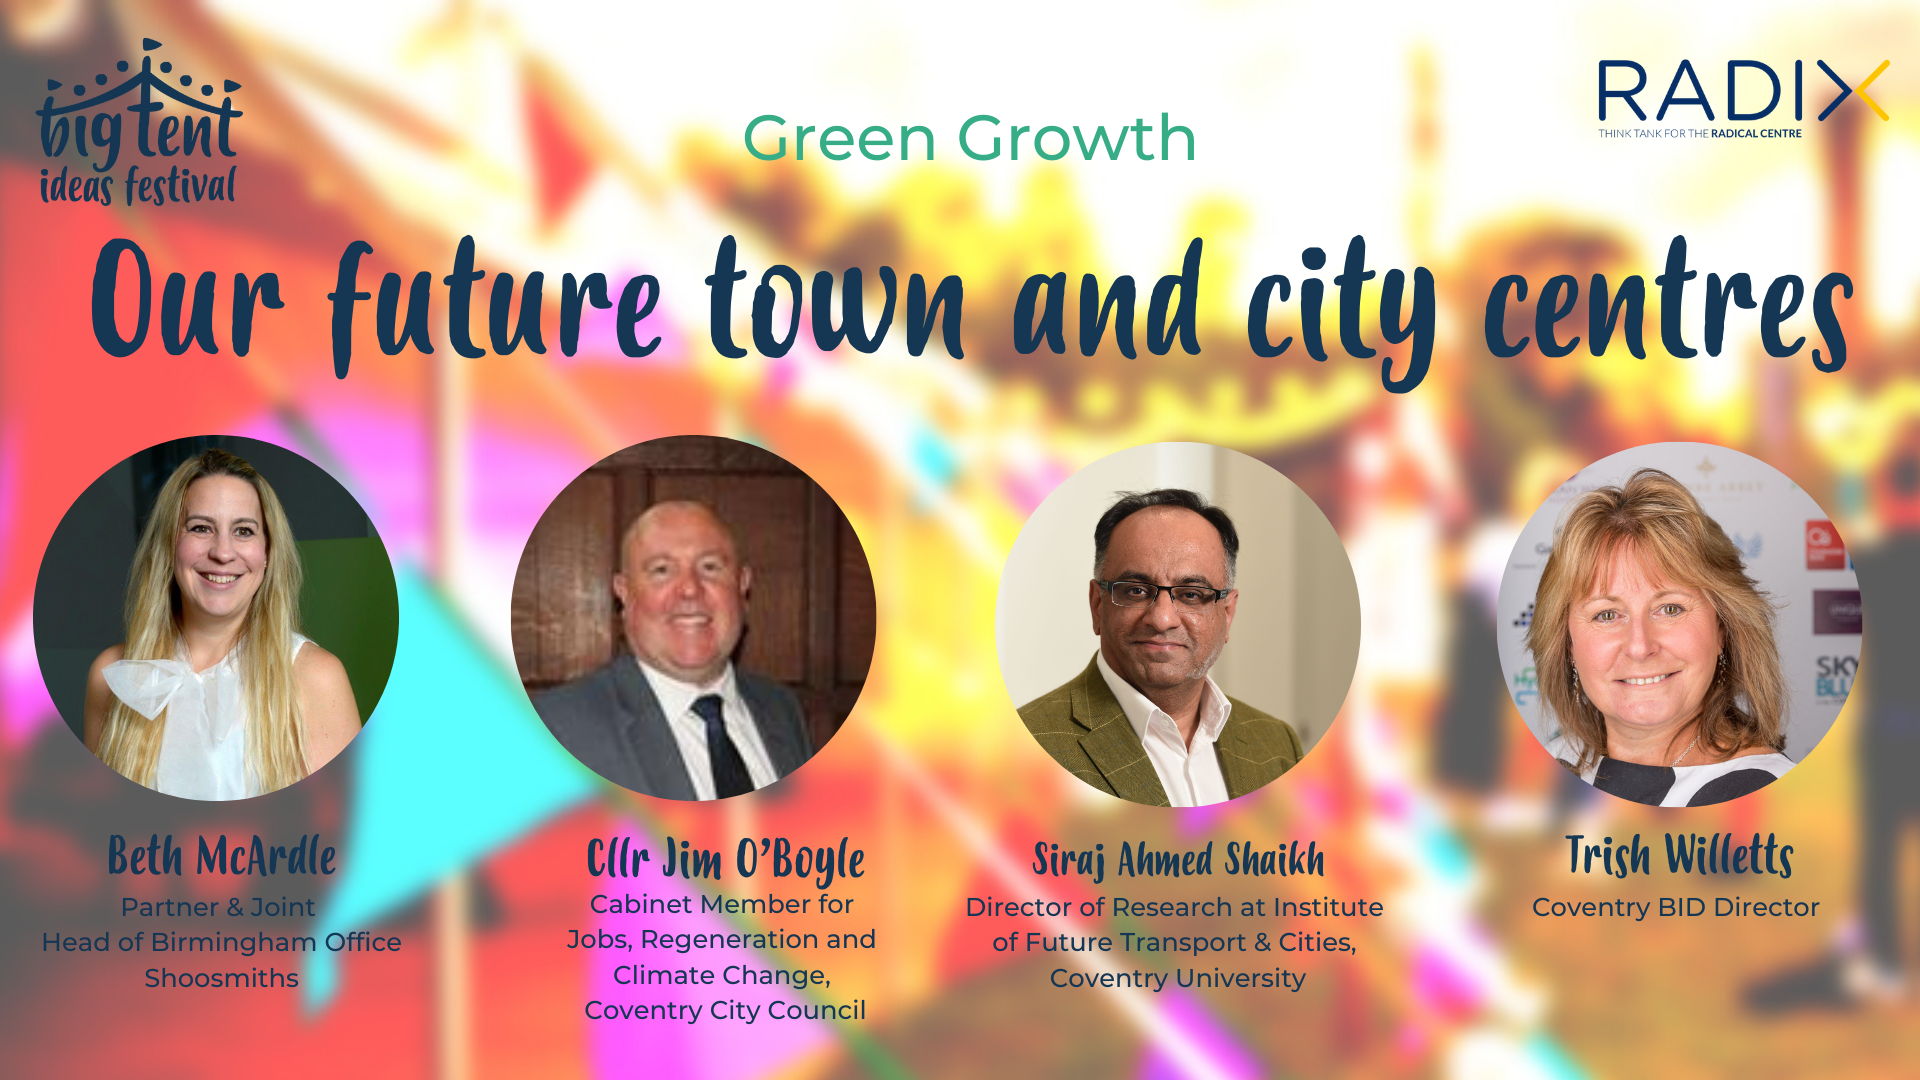 Our Future Town and City Centres